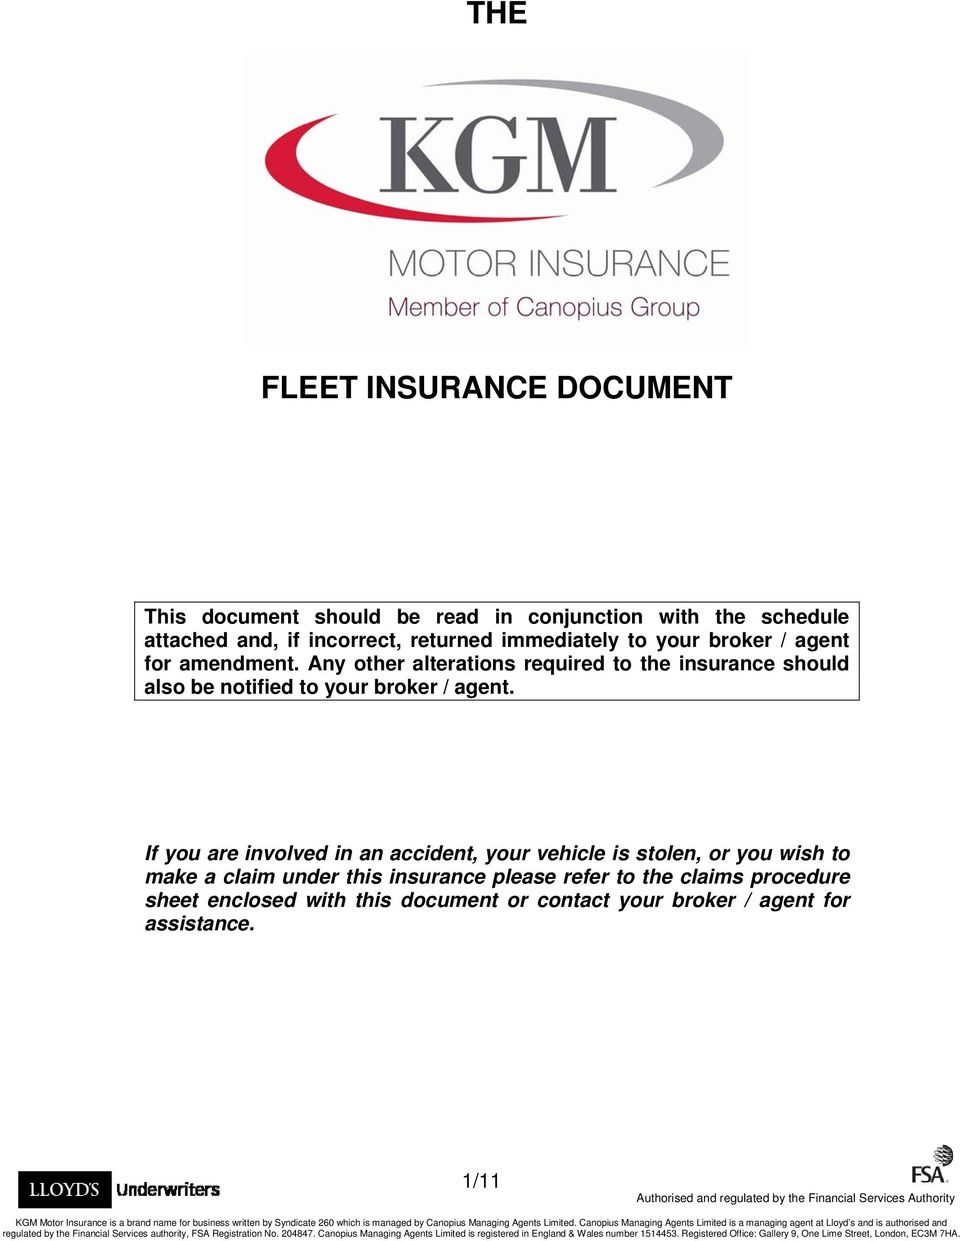 If you are involved in an accident, your vehicle is stolen, or you wish to make a claim under this insurance please refer to the claims procedure sheet enclosed with this document or contact your